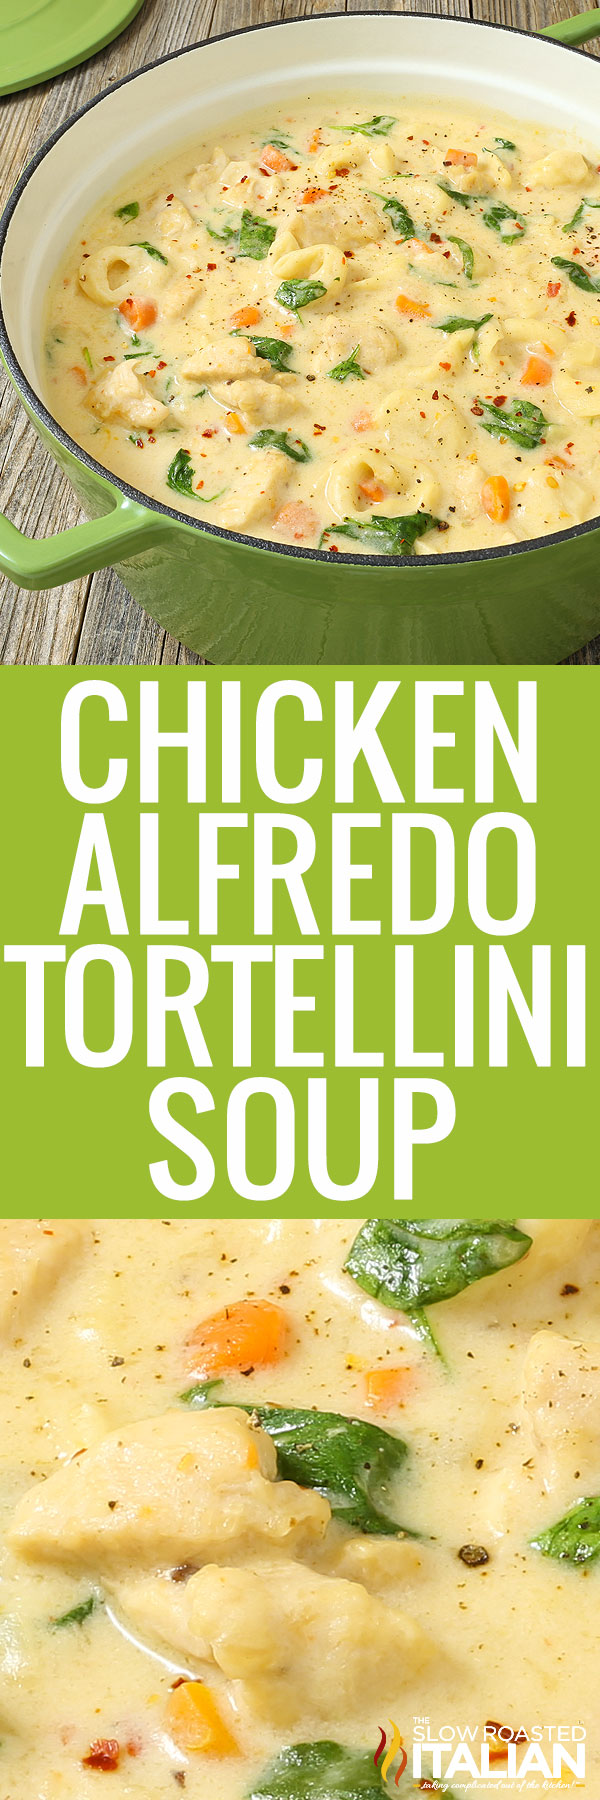 chicken tortellini soup with spinac